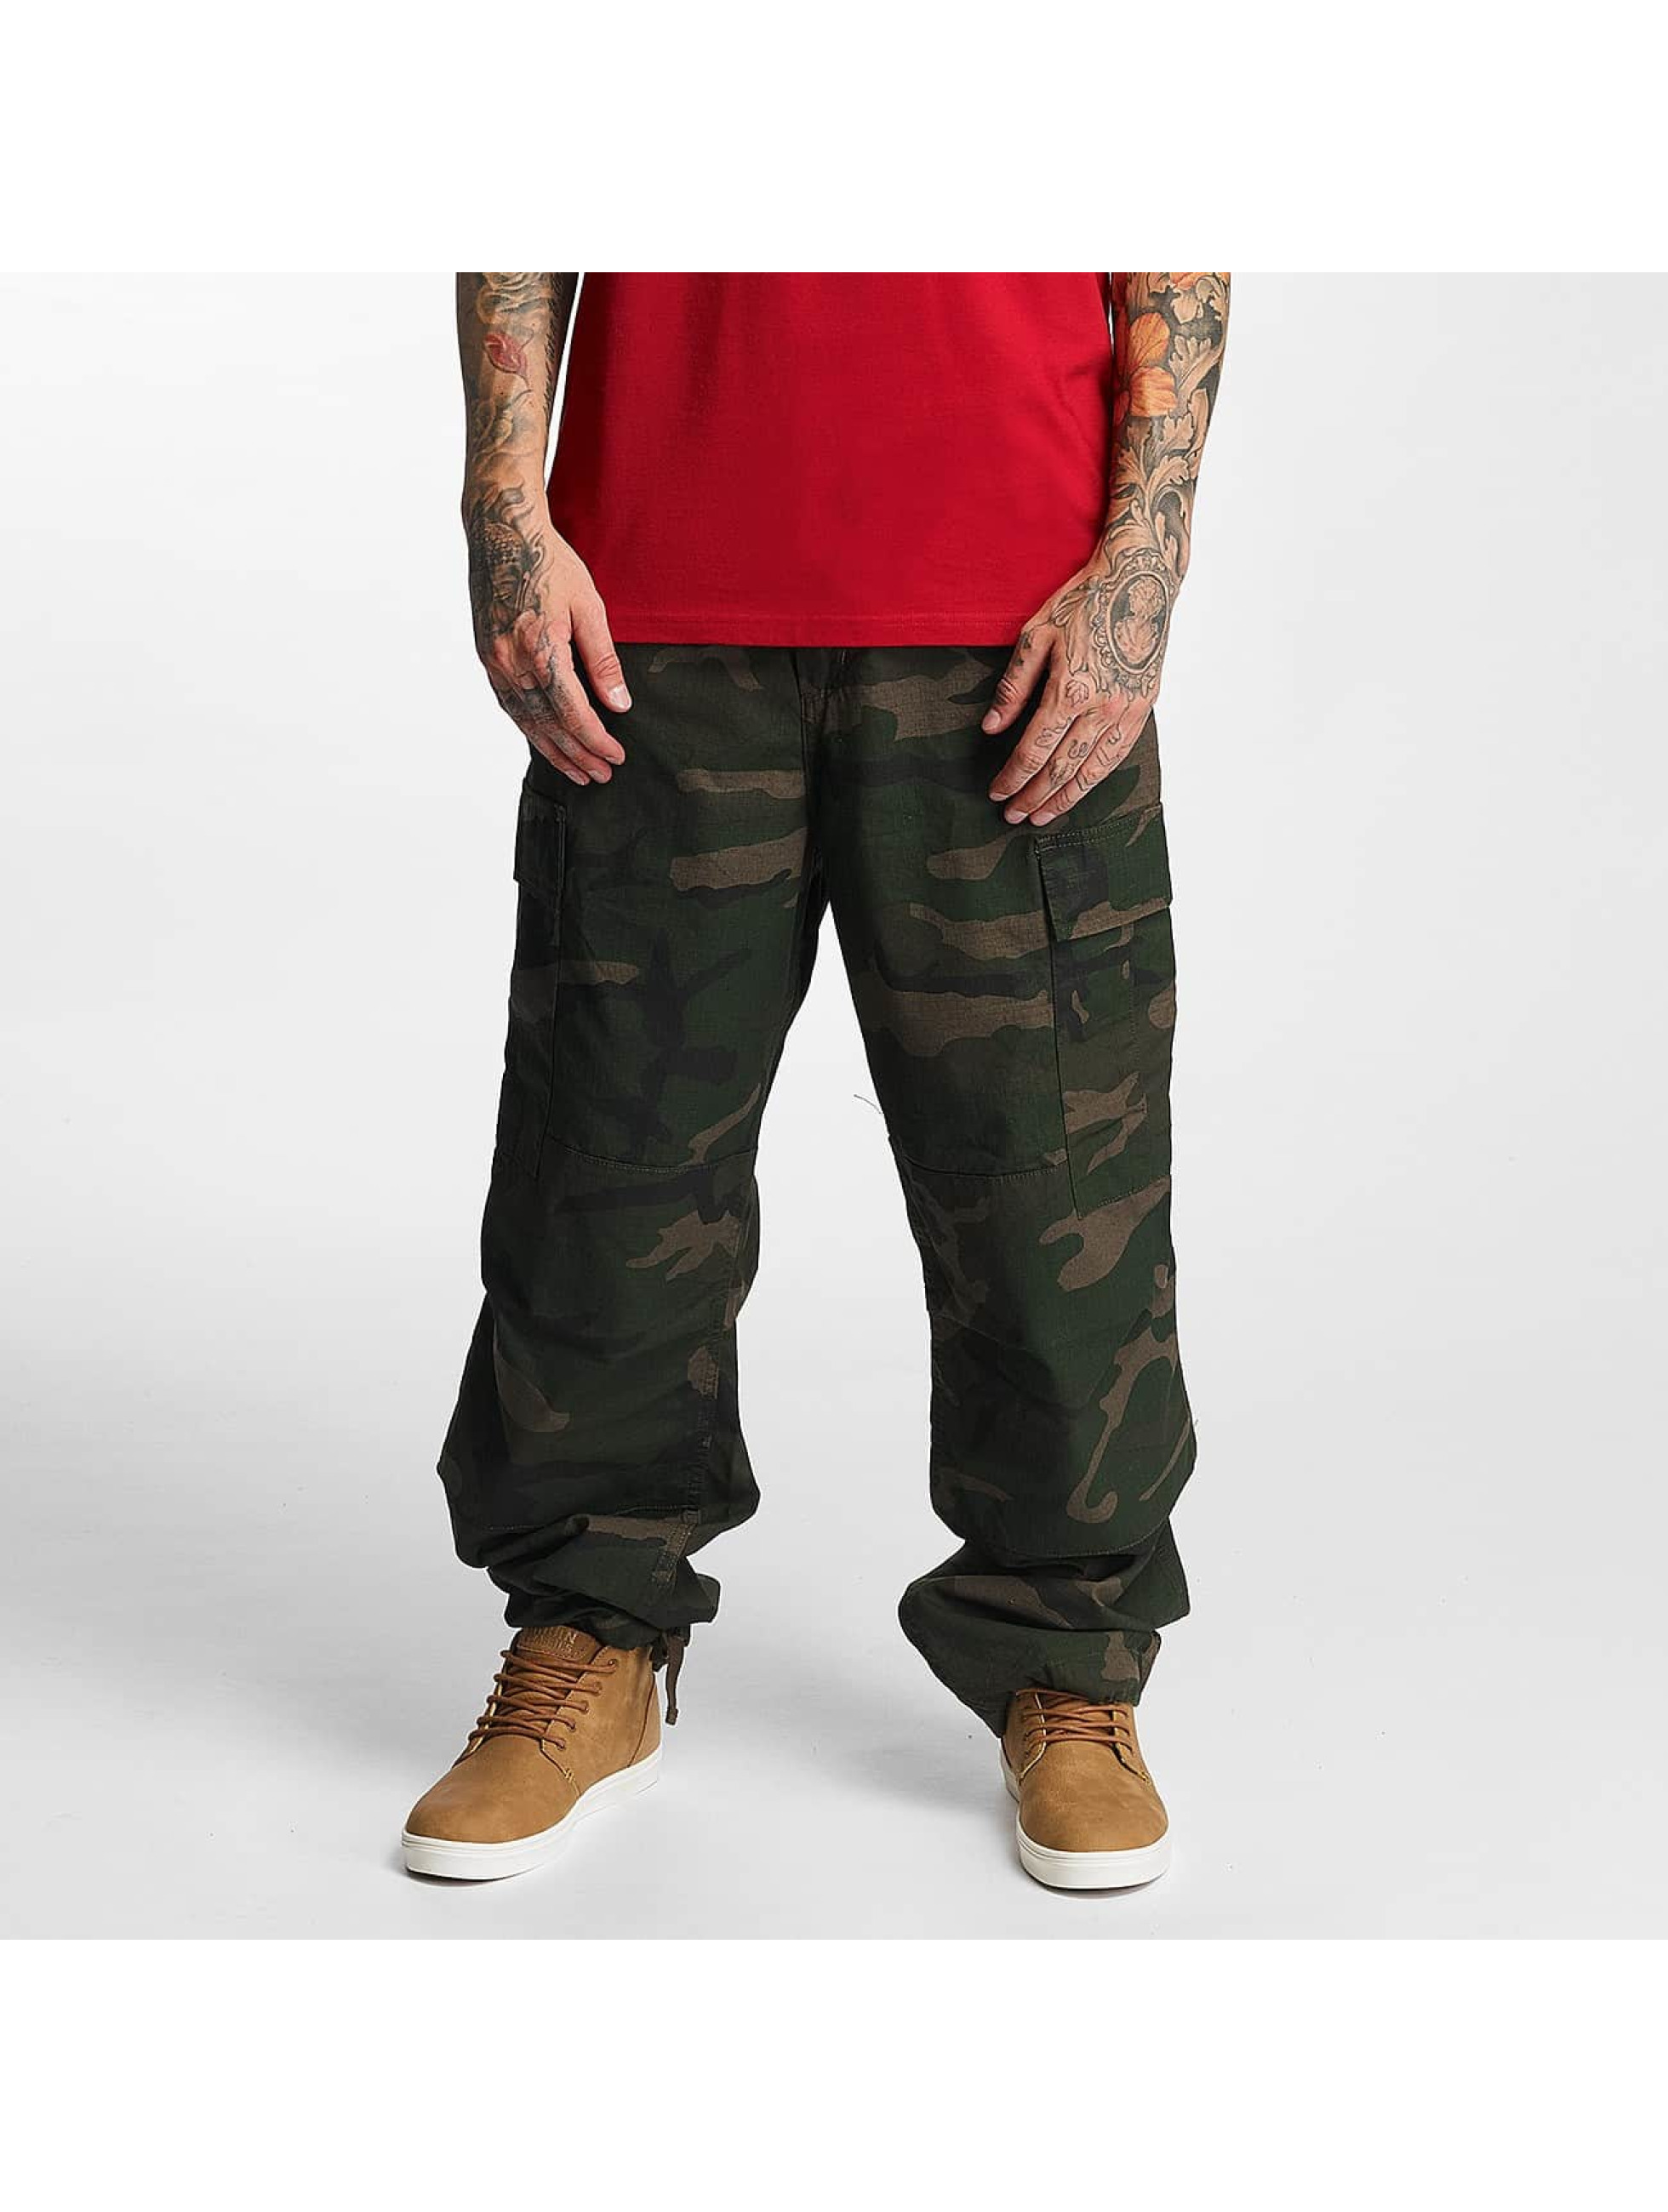 Carhartt WIP Cargohose Columbia Relaxed Fit camouflage